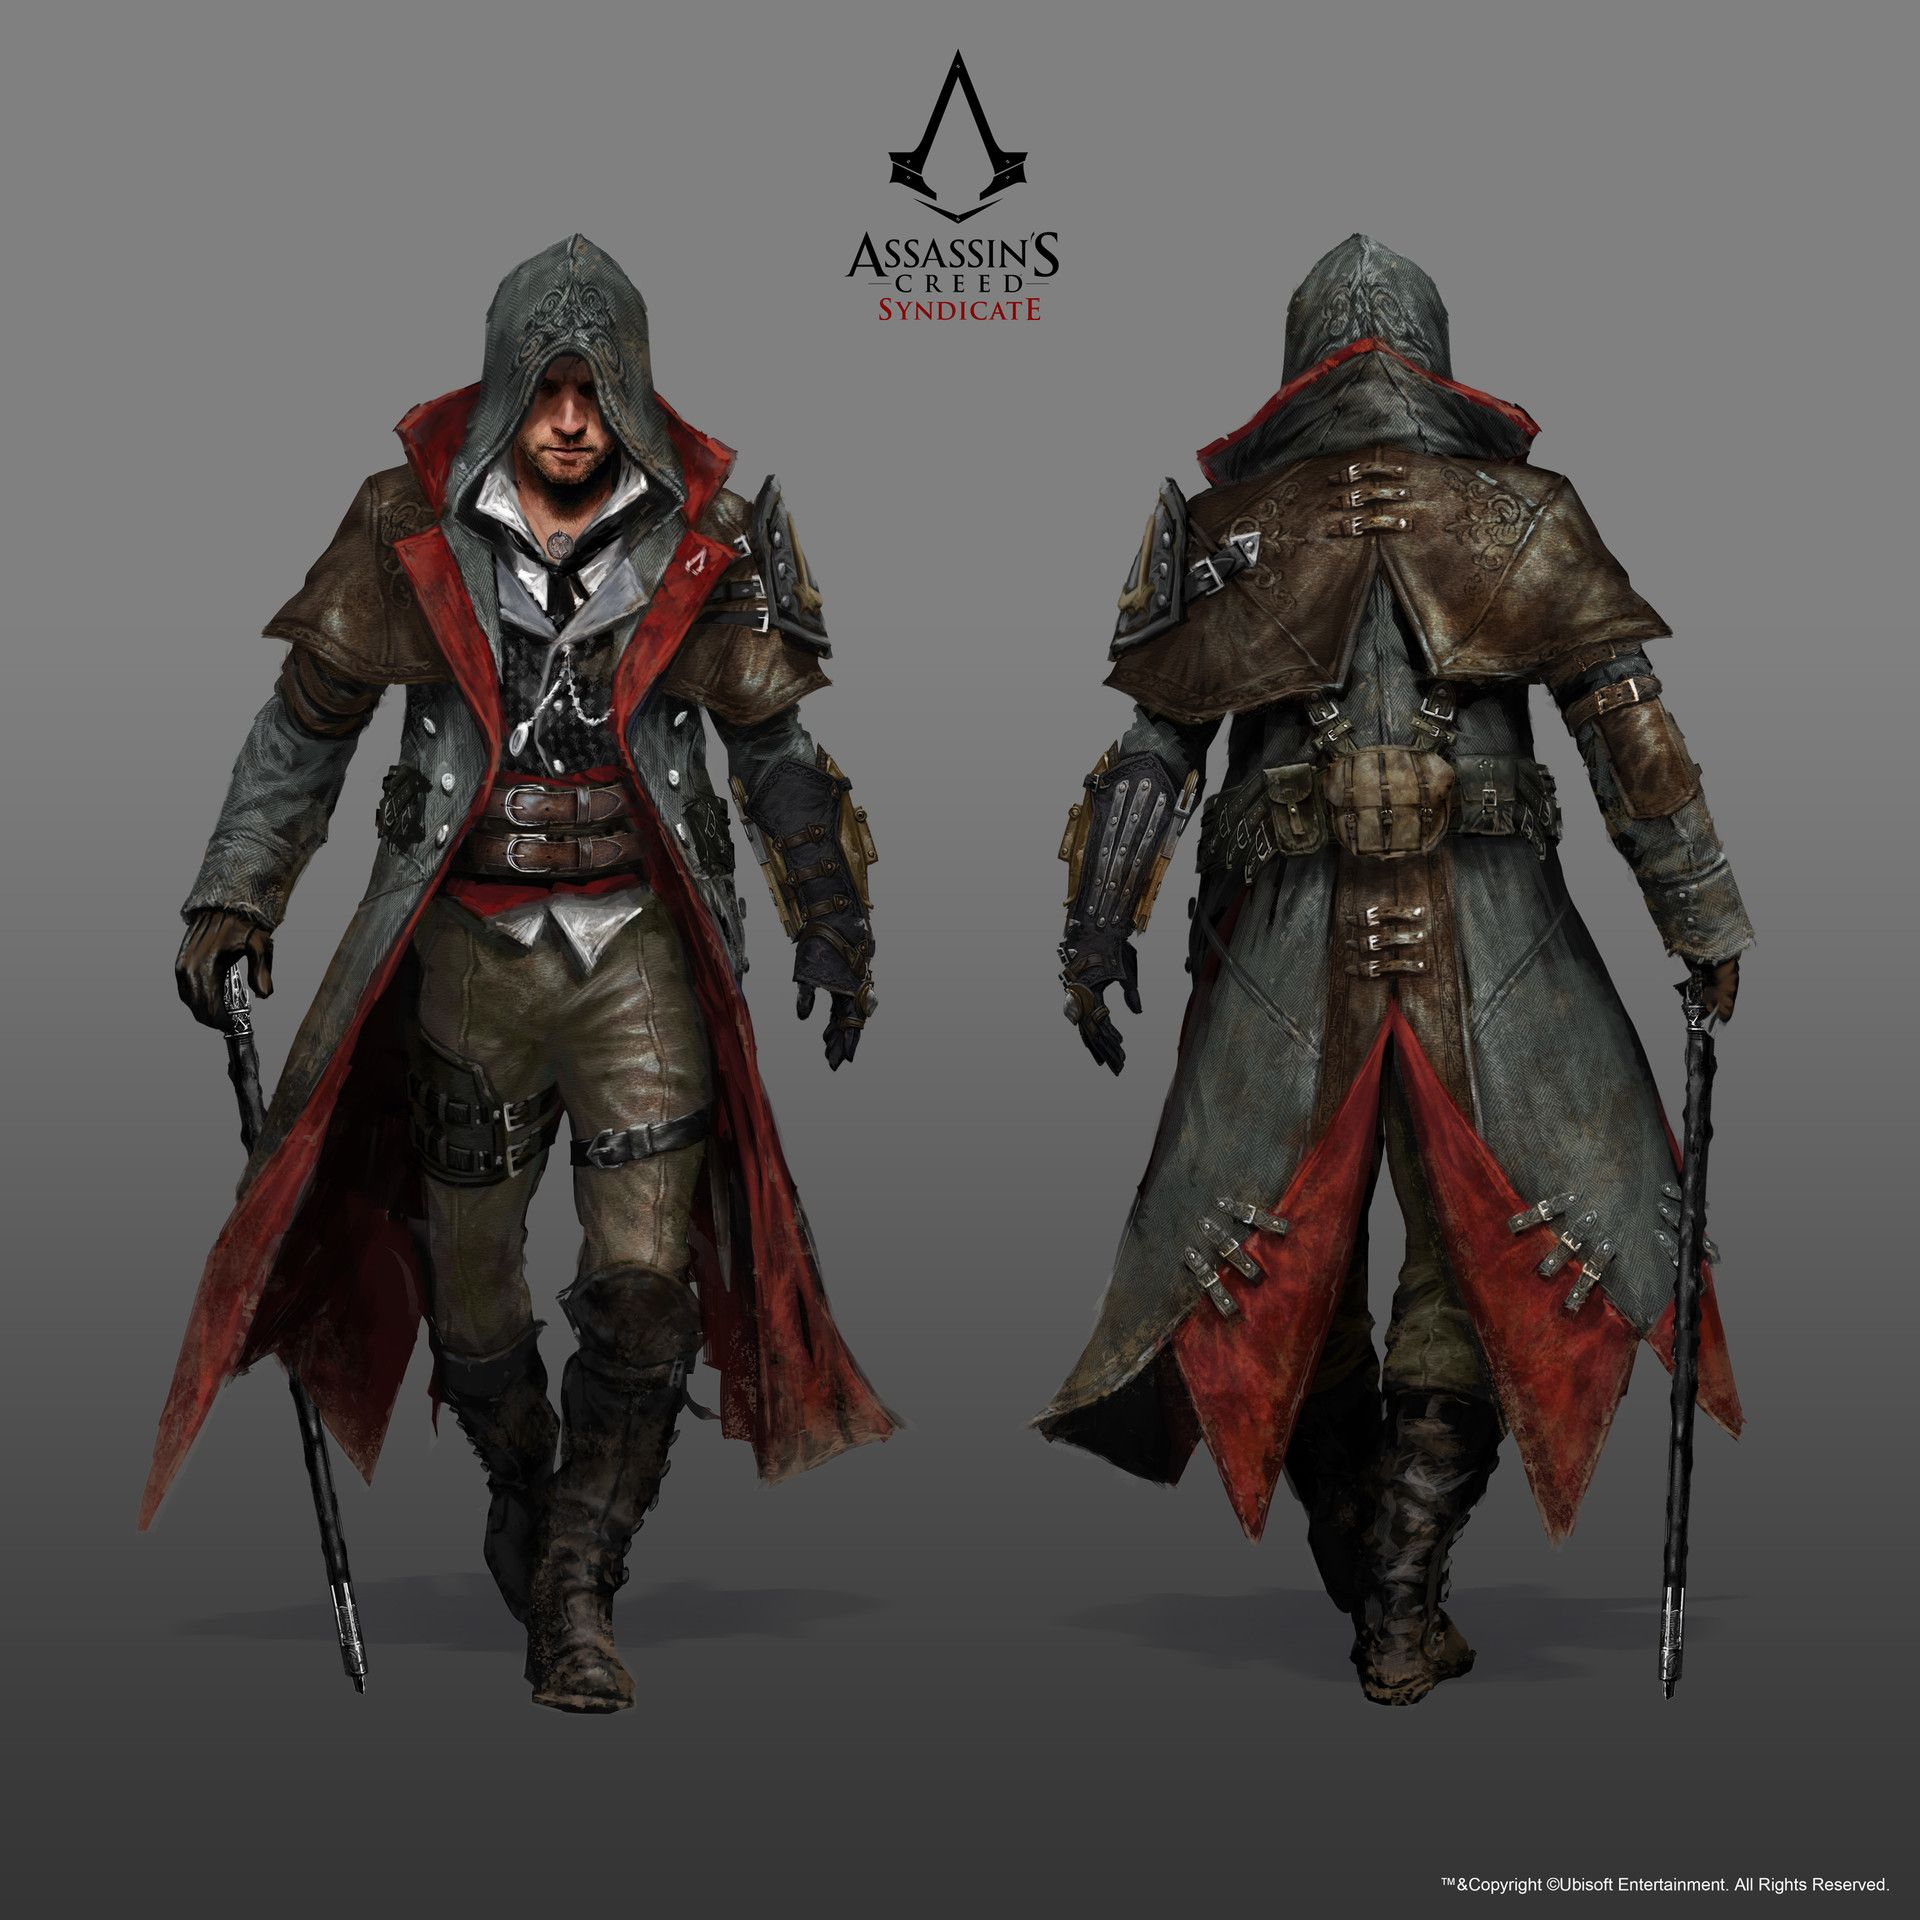 Jacob In His Master Assassin Outfit Assassins Creed All Assassin S Creed Assassins Creed Syndicate